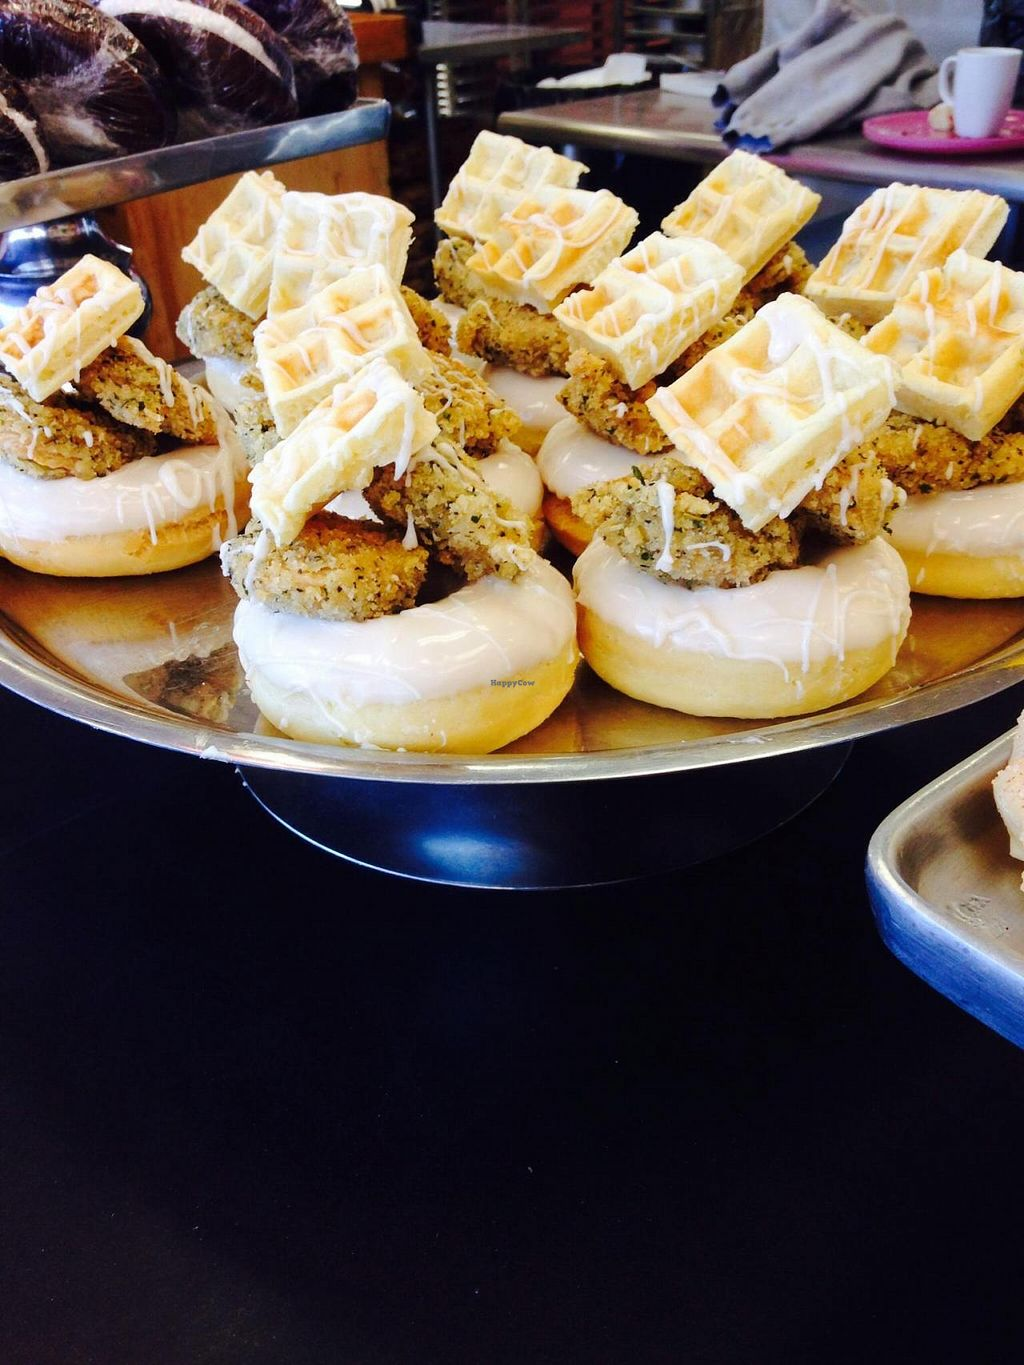 """Photo of Vegan Treats Bakery  by <a href=""""/members/profile/cookiem"""">cookiem</a> <br/>Chik'n and waffle doughnut!!! <br/> September 16, 2014  - <a href='/contact/abuse/image/6784/80143'>Report</a>"""